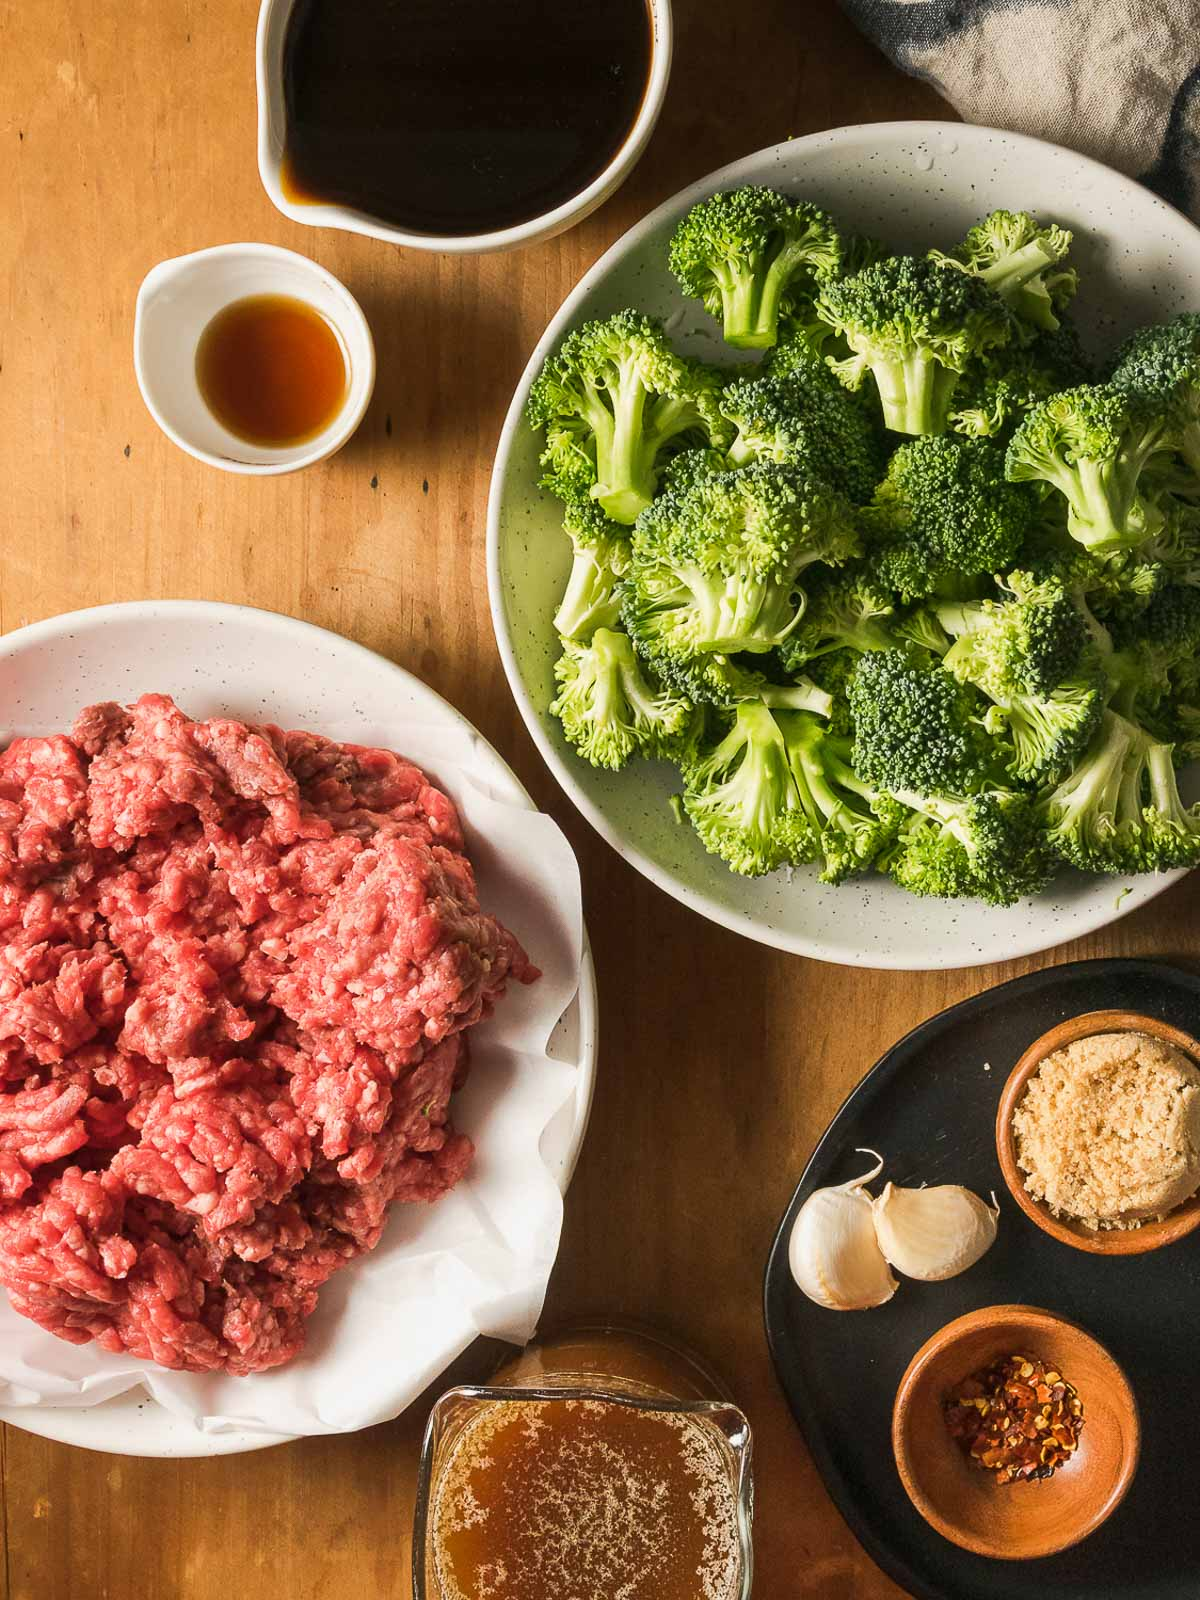 All ingredients for ground beef and broccoli.